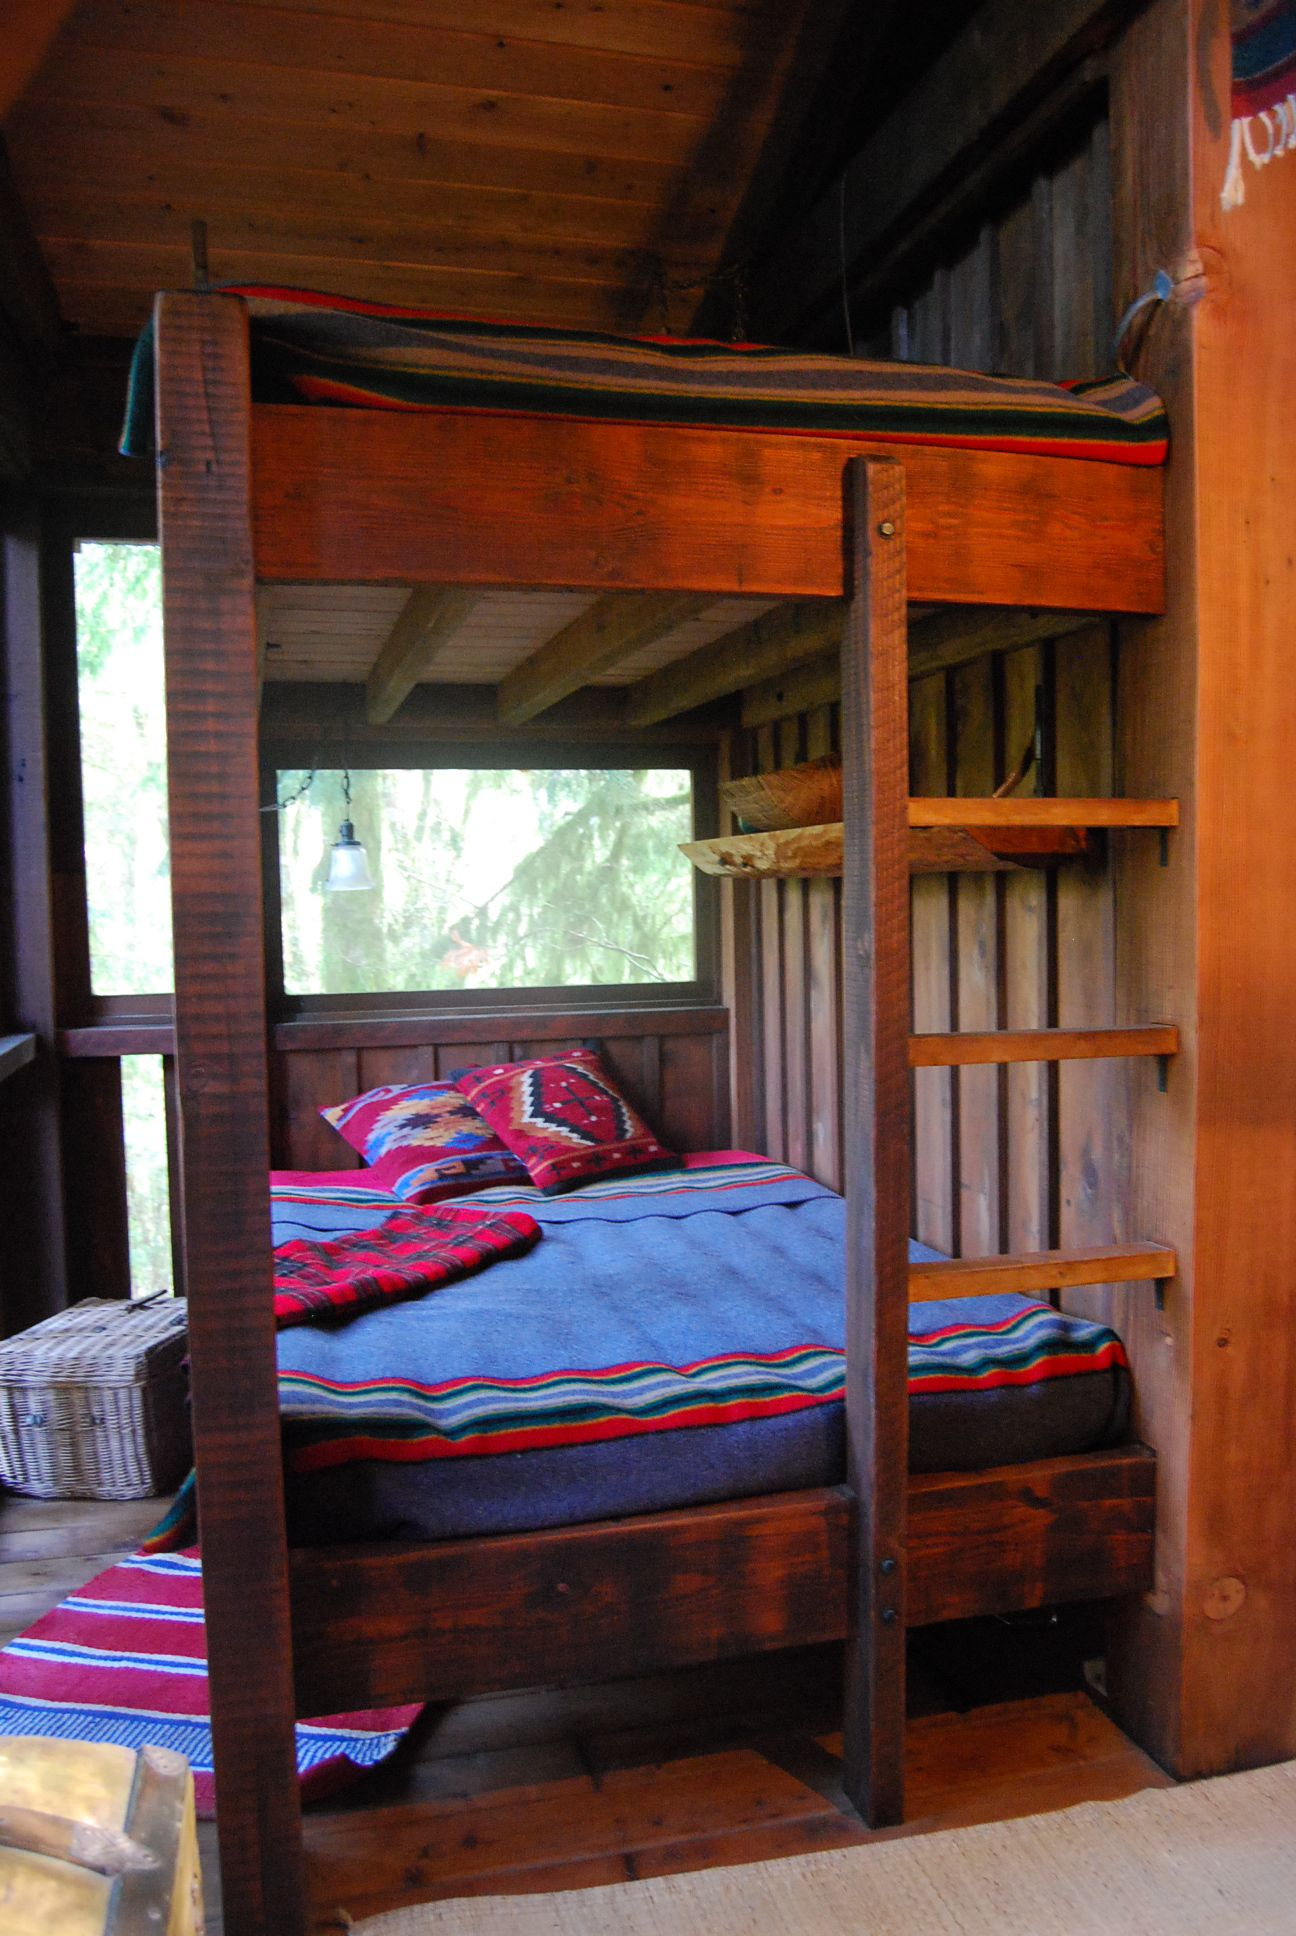 Rustic style bunk beds Rustic style, Home decor, Bunk beds